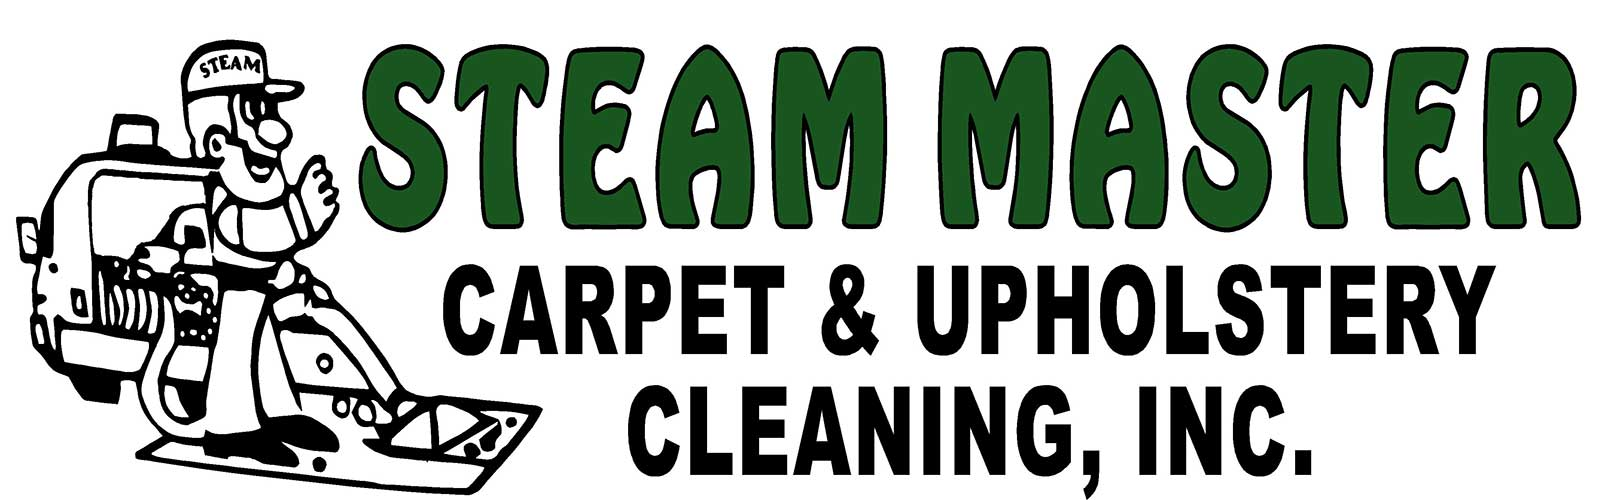 Carpet Cleaning Asheville, Upholstery